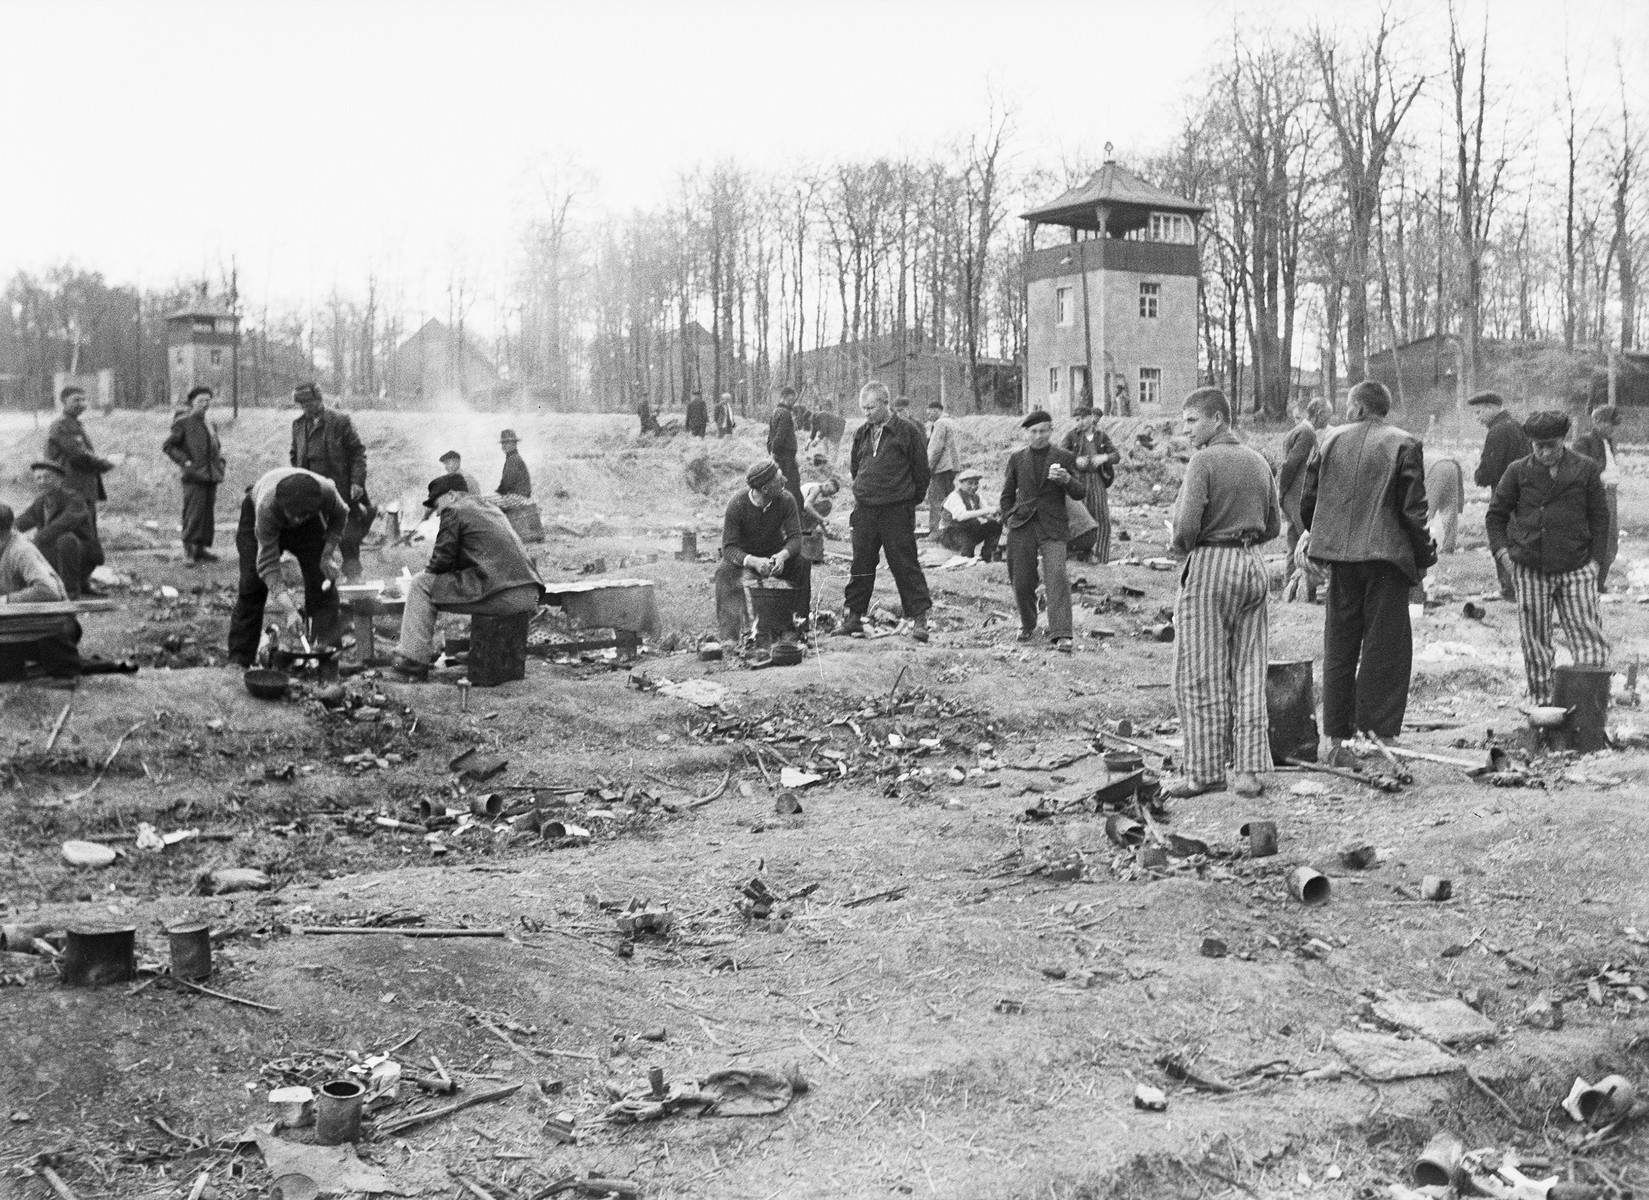 Recently liberated prisoners prepare food in the open at Buchenwald. Two guard towers are visible in the background.